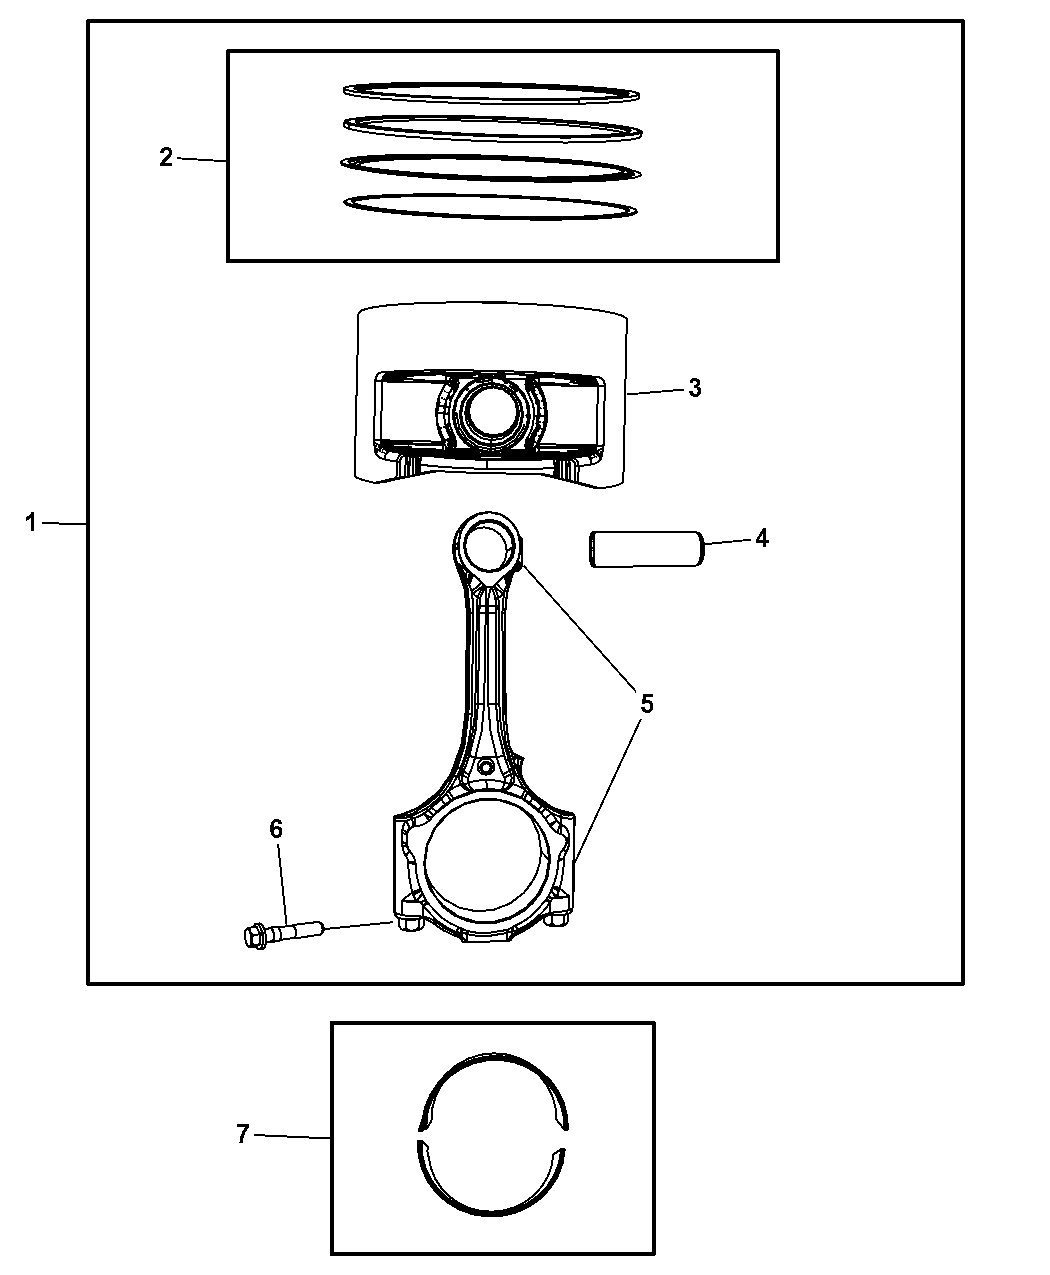 2011 Jeep Wrangler Pistons, Piston Rings, Connecting Rods & Connecting Rod  Bearing - Thumbnail